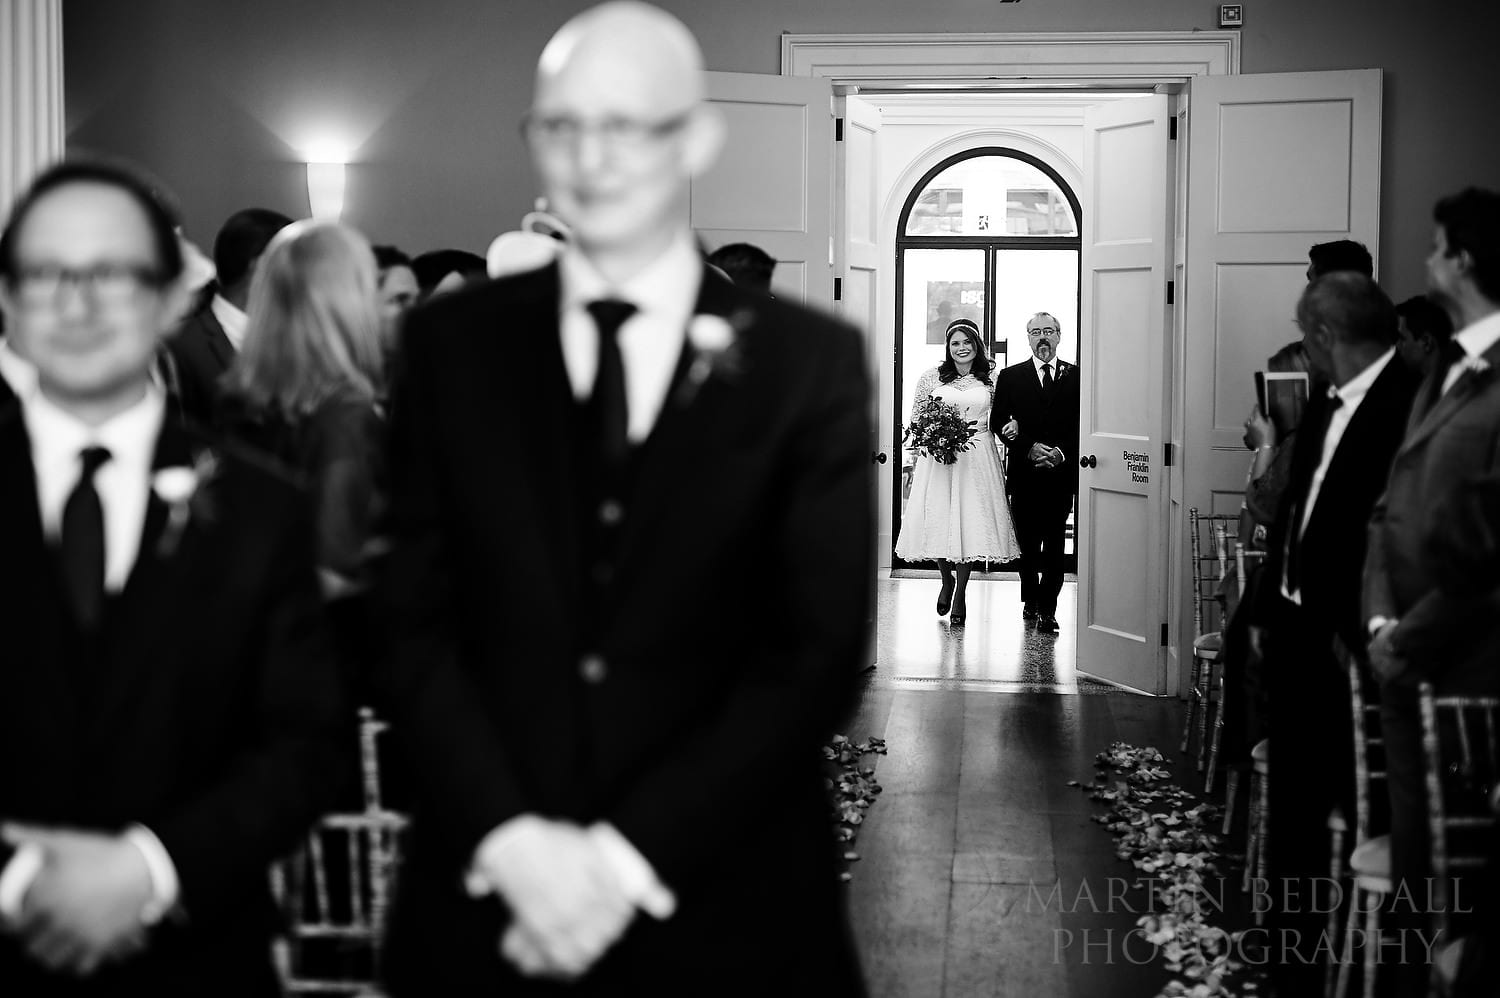 Bride enters the ceremony room at Royal Society of Arts with her father